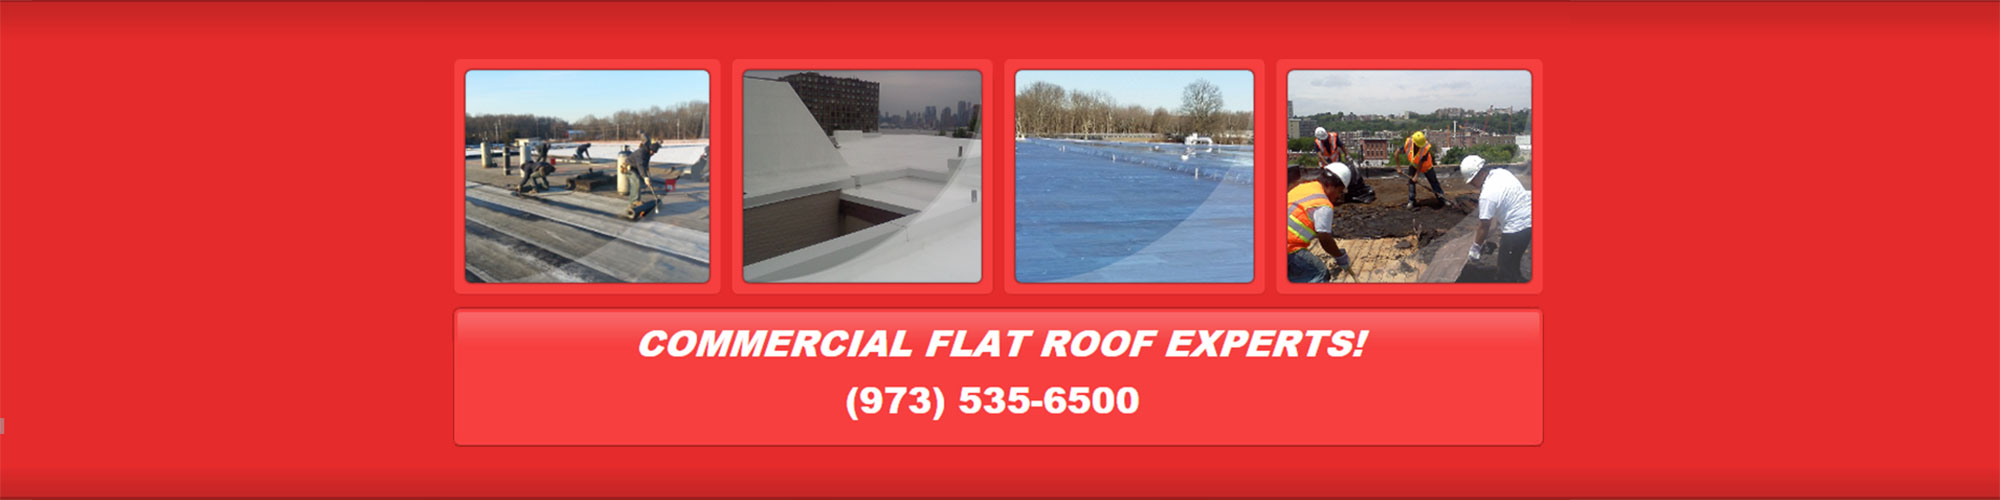 Roofers Nj Roofing Contractors R Stevens Commercial Roofing Inc